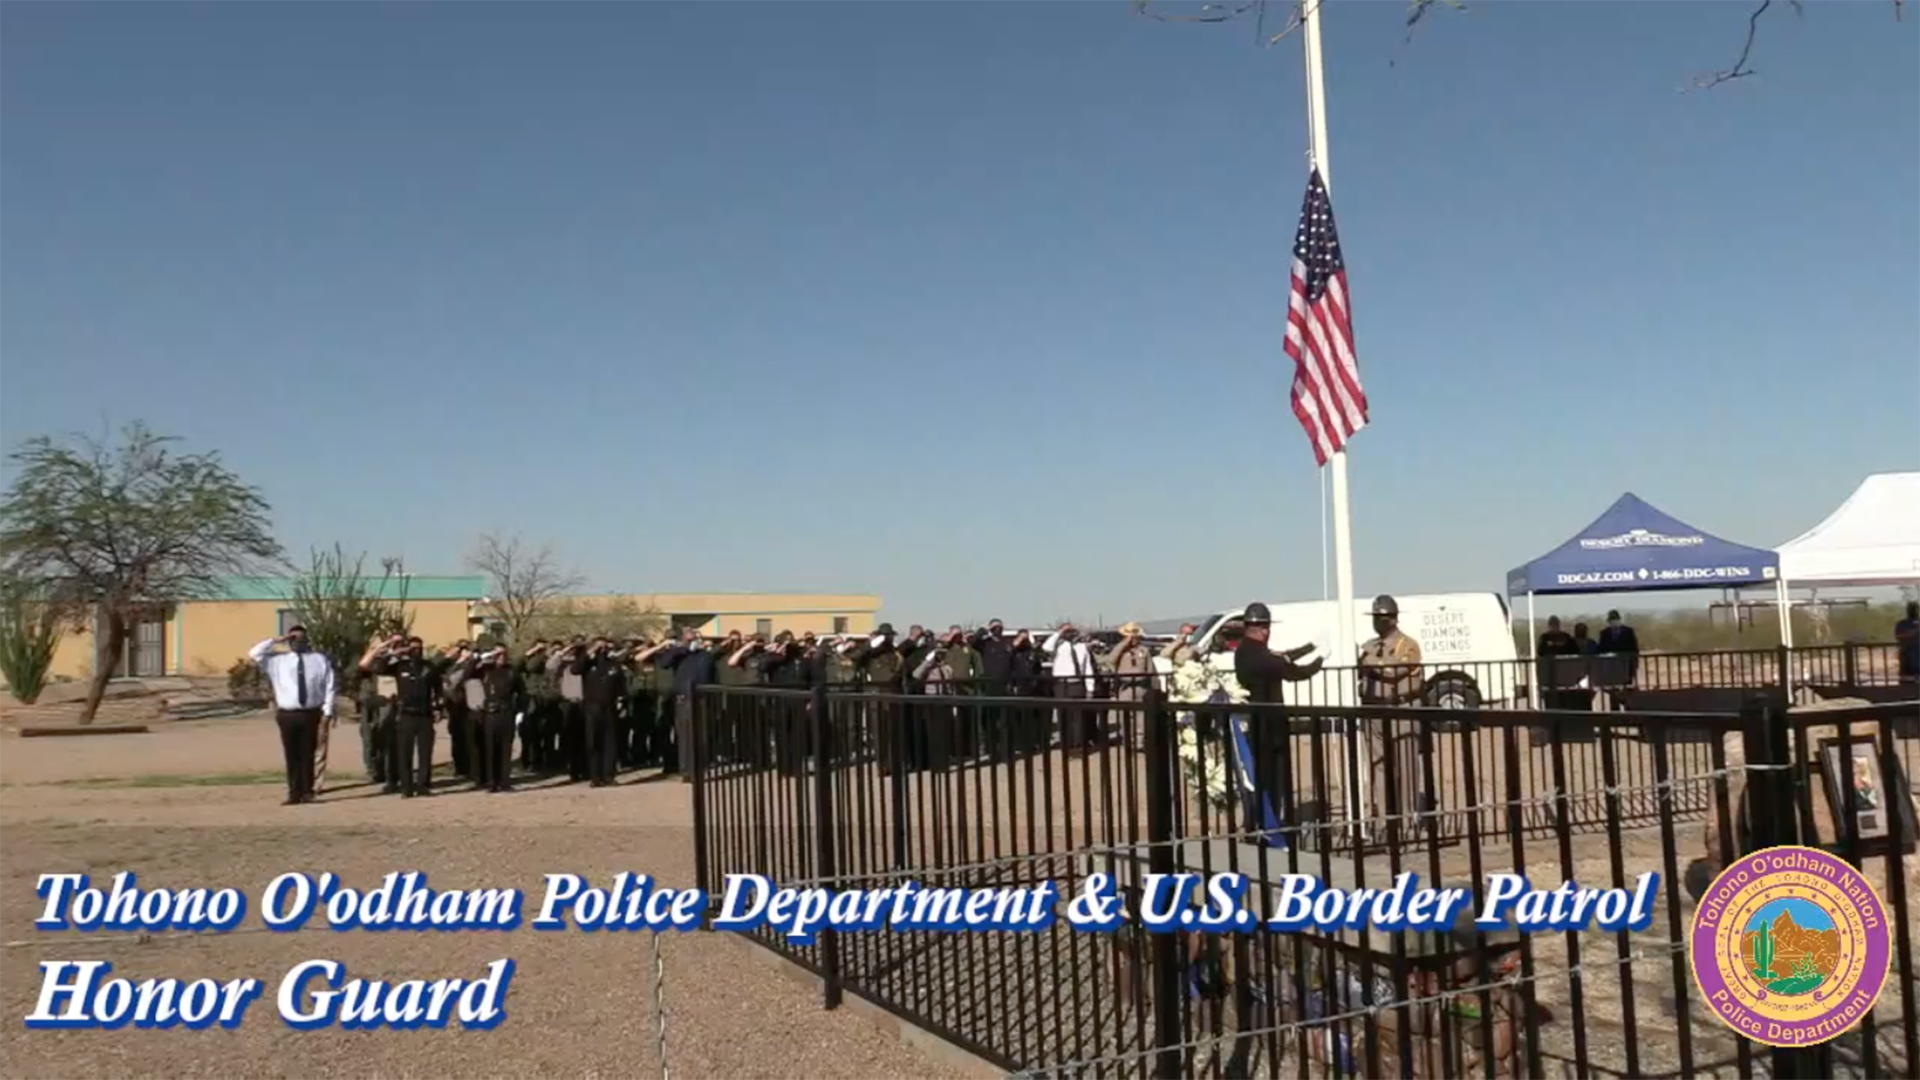 Uniformed personnel saluting during Tohono O'odham Nation Officer Bryan Brown's memorial service August 27, 2021, a year after his death.